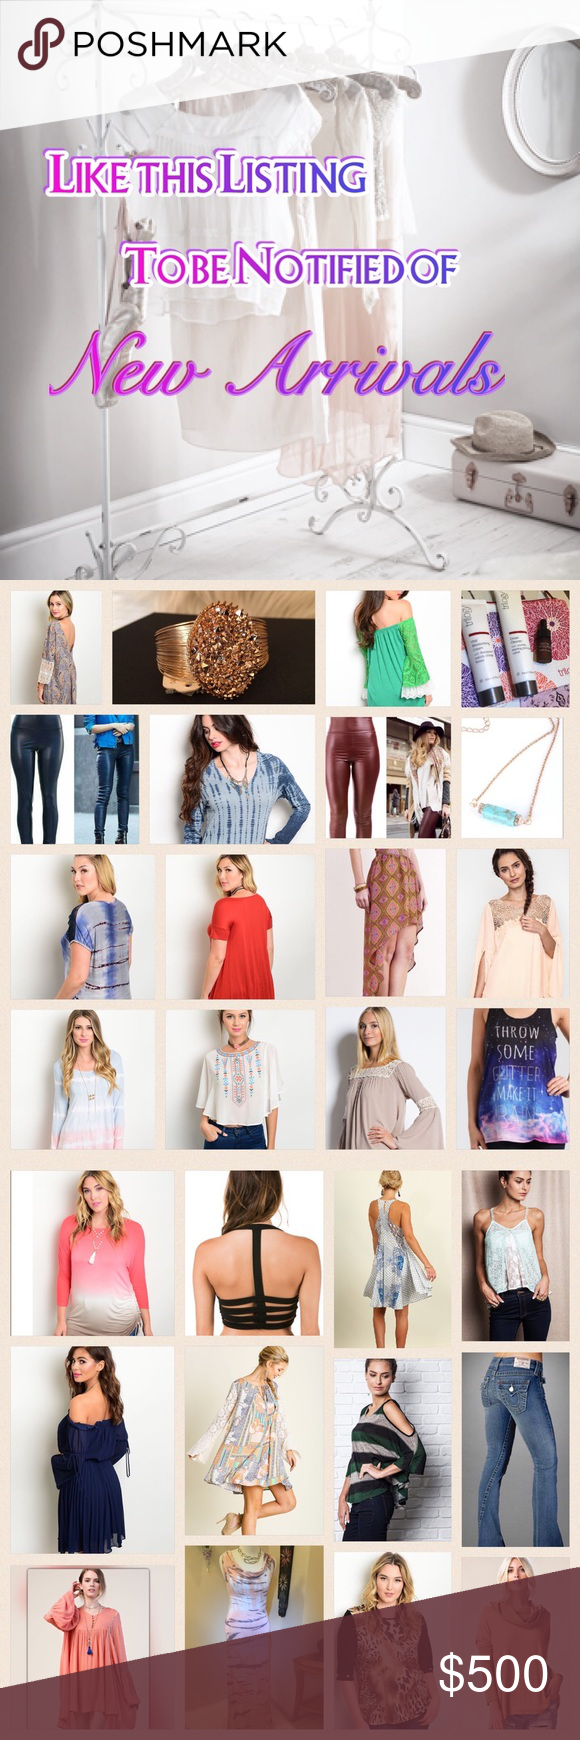 ✨New Arrivals Sign Up List✨ Please like this listing or tag me below if you'd like to be notified of New Boutique Inventory or Items I list to my Personal Closet. I will be adding new listings weekly....Don't forget to use the 'Add to Bundle' feature to also save 20% off any 2+ items in my closet! Thanks to you, I've been able to be successful at this place I love...❤️Poshmark❤️ LDB Other